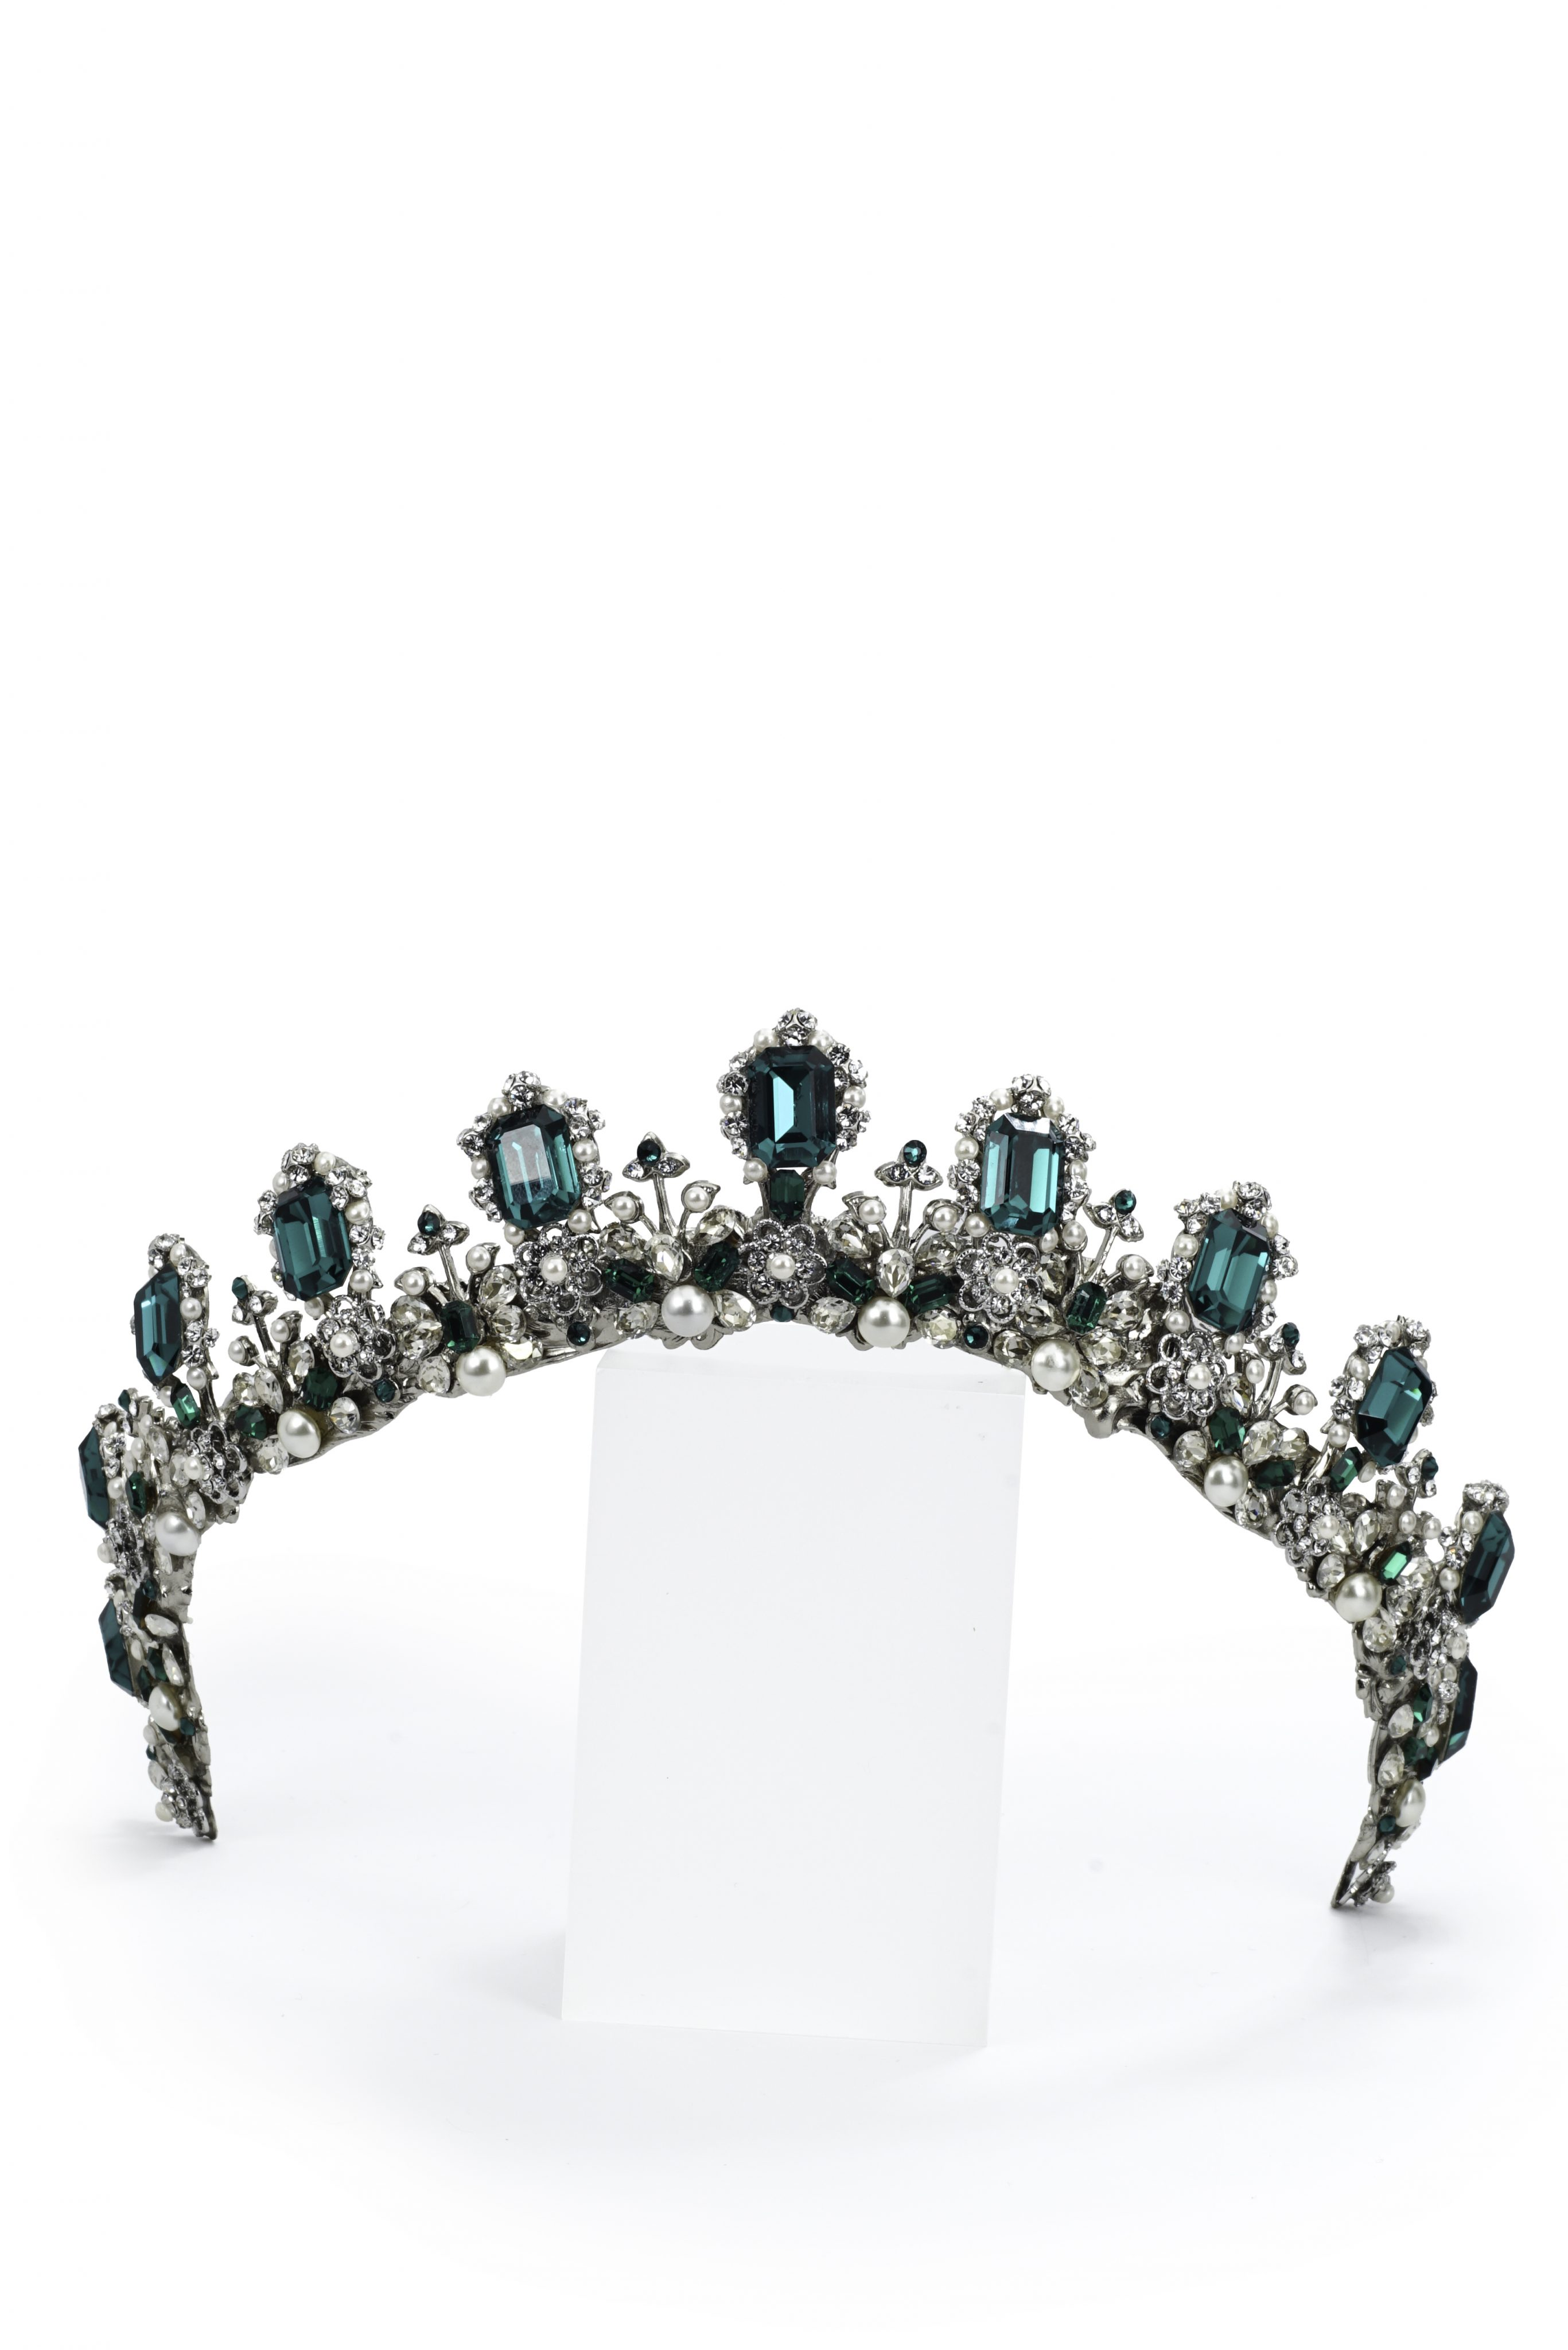 Crown With Detailed Emerald Green Crystals And Pearl